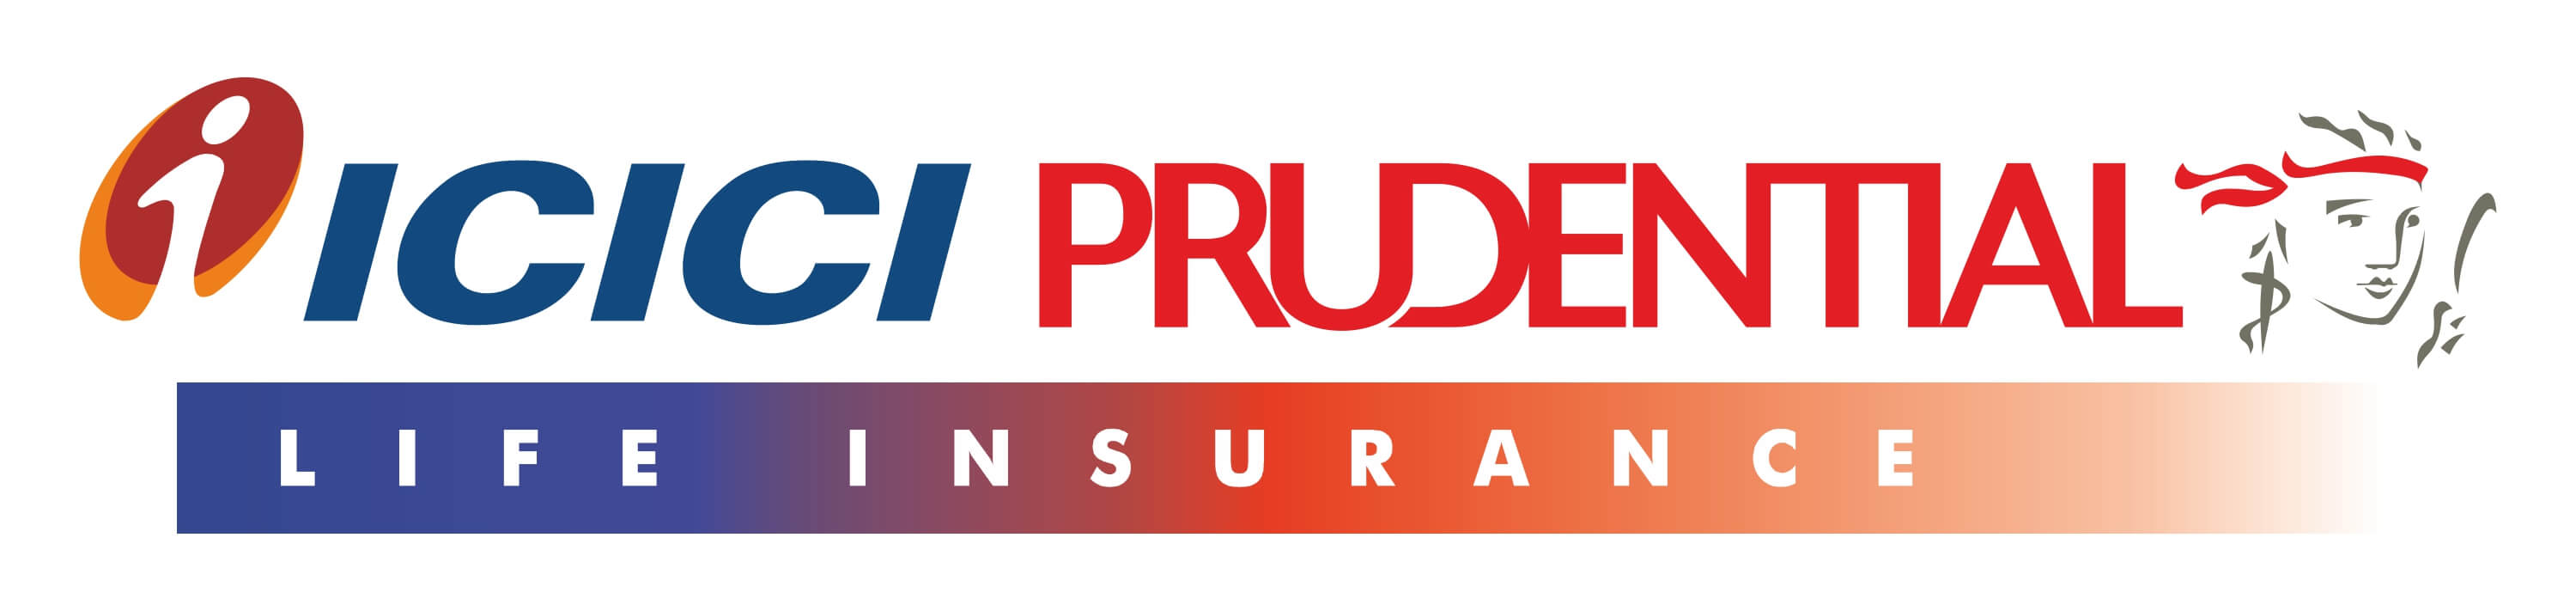 ICICI Prudential Life Insurance Company Limited